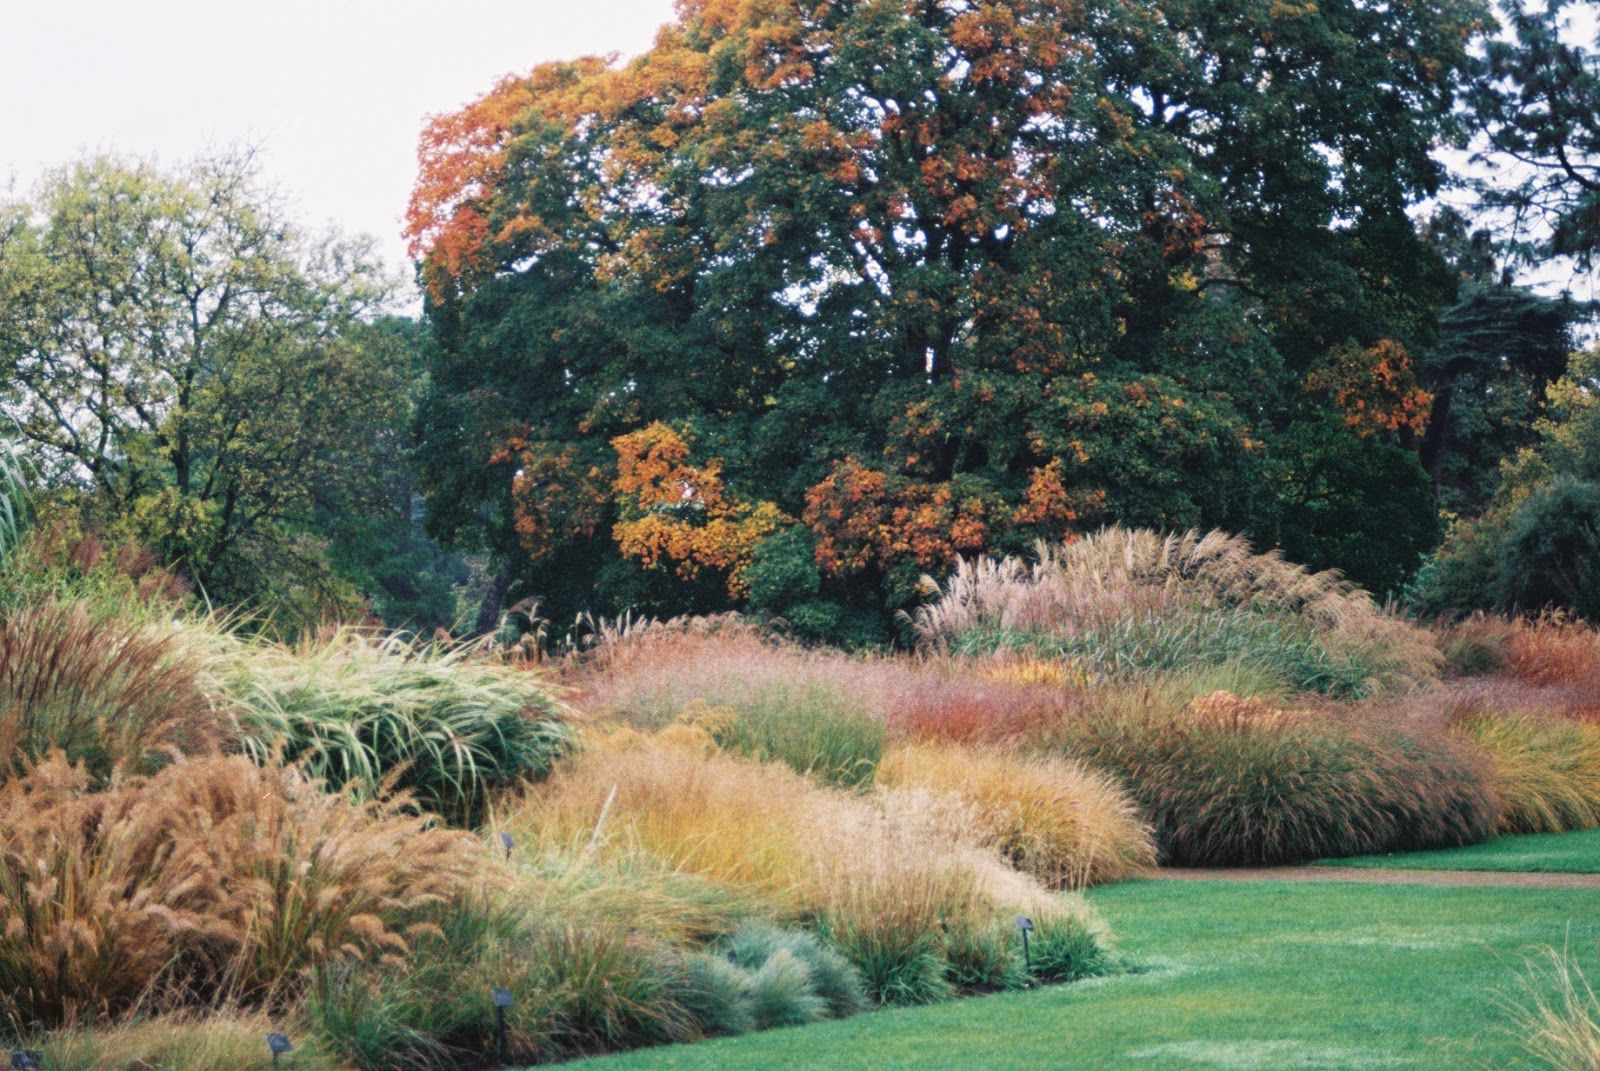 Pin by cheryl howard on grass pinterest grasses and gardens discover ideas about garden grass workwithnaturefo